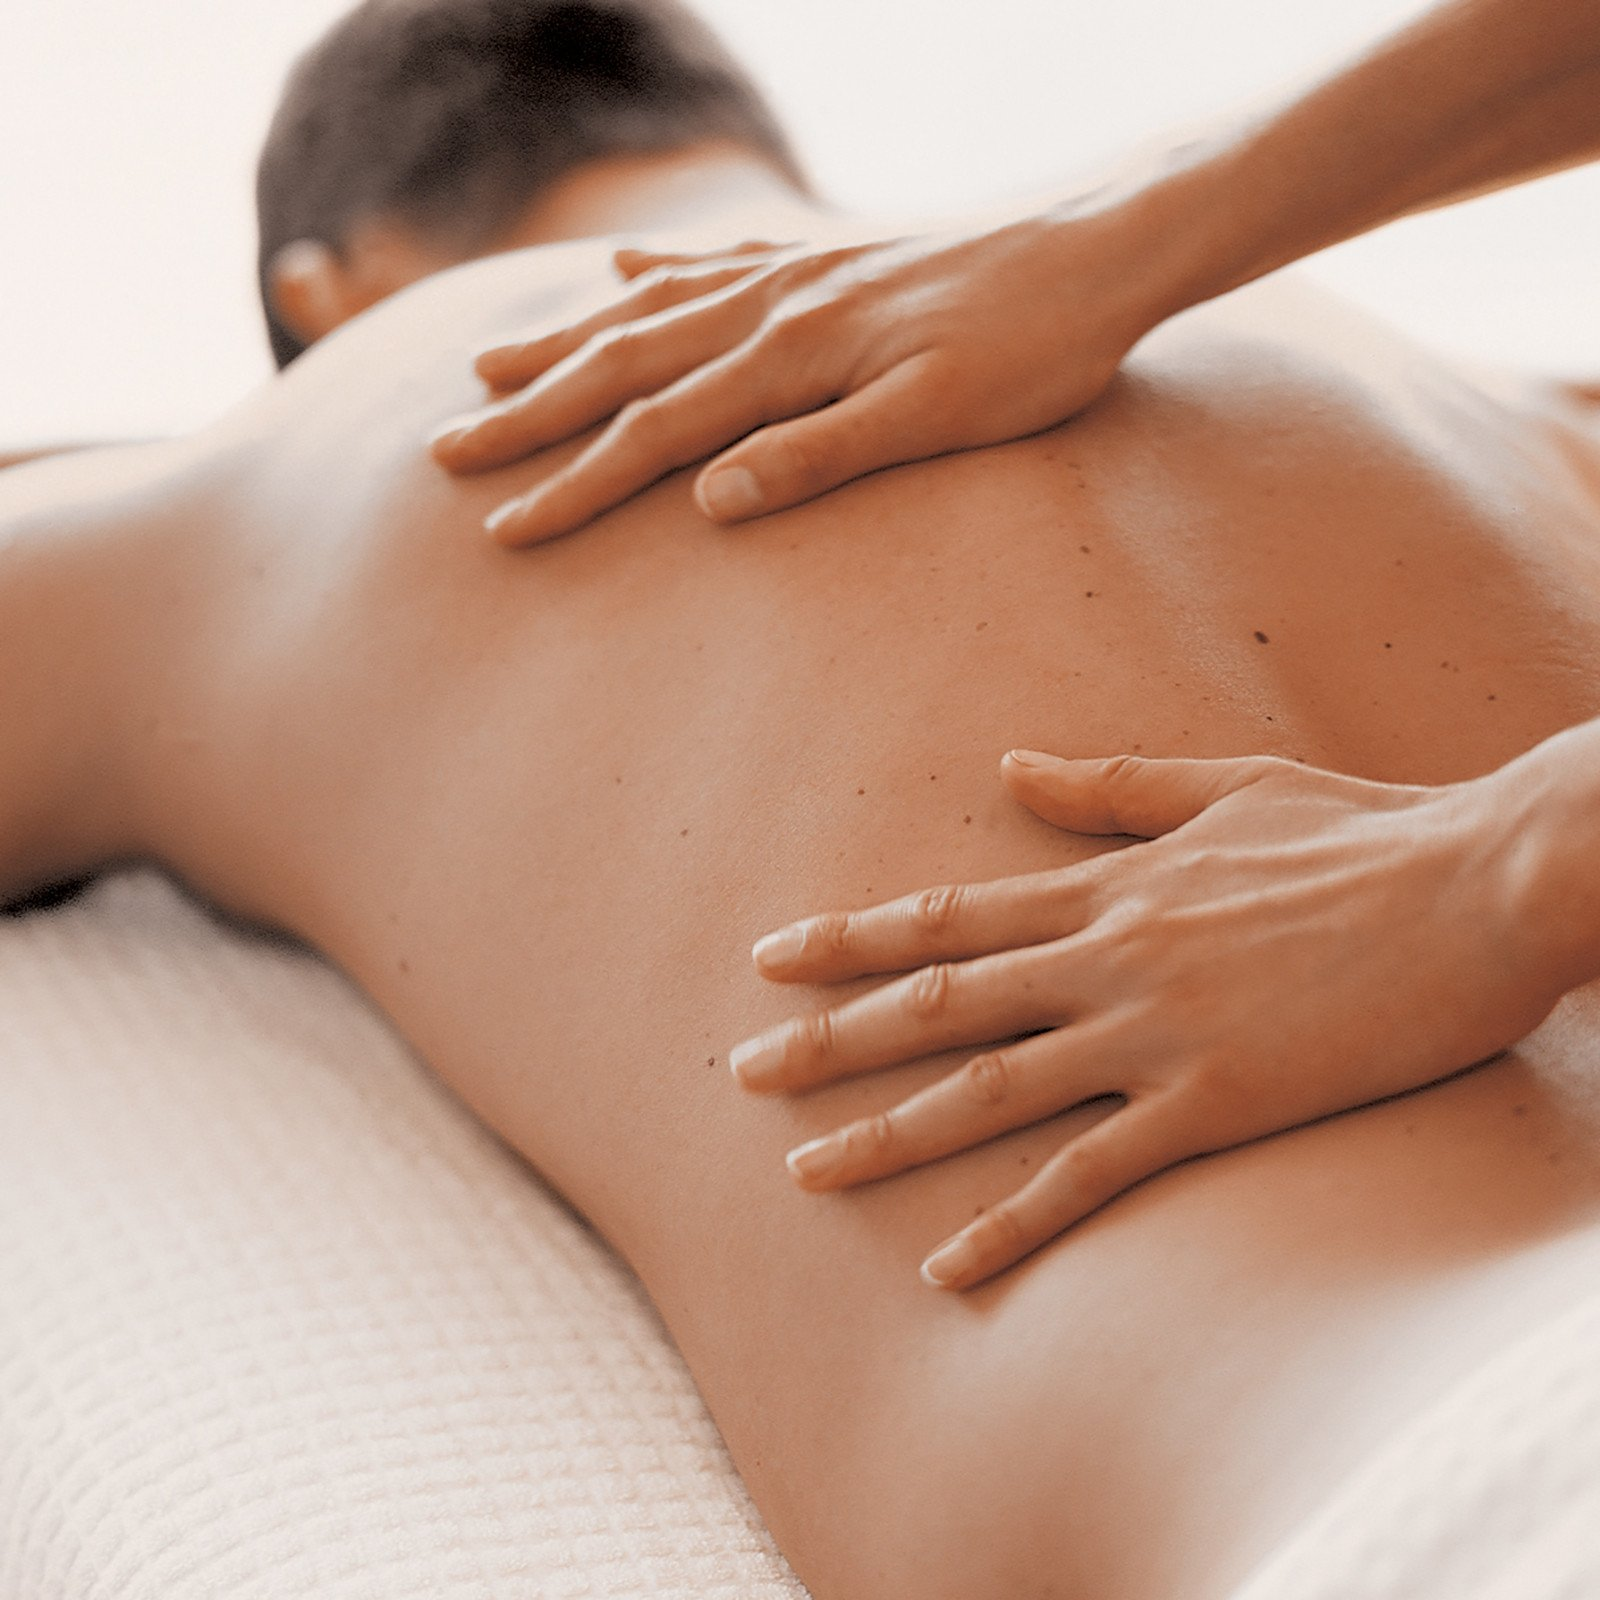 Restore Your Body and Prepare for Your Next Sporting Event Through Massage